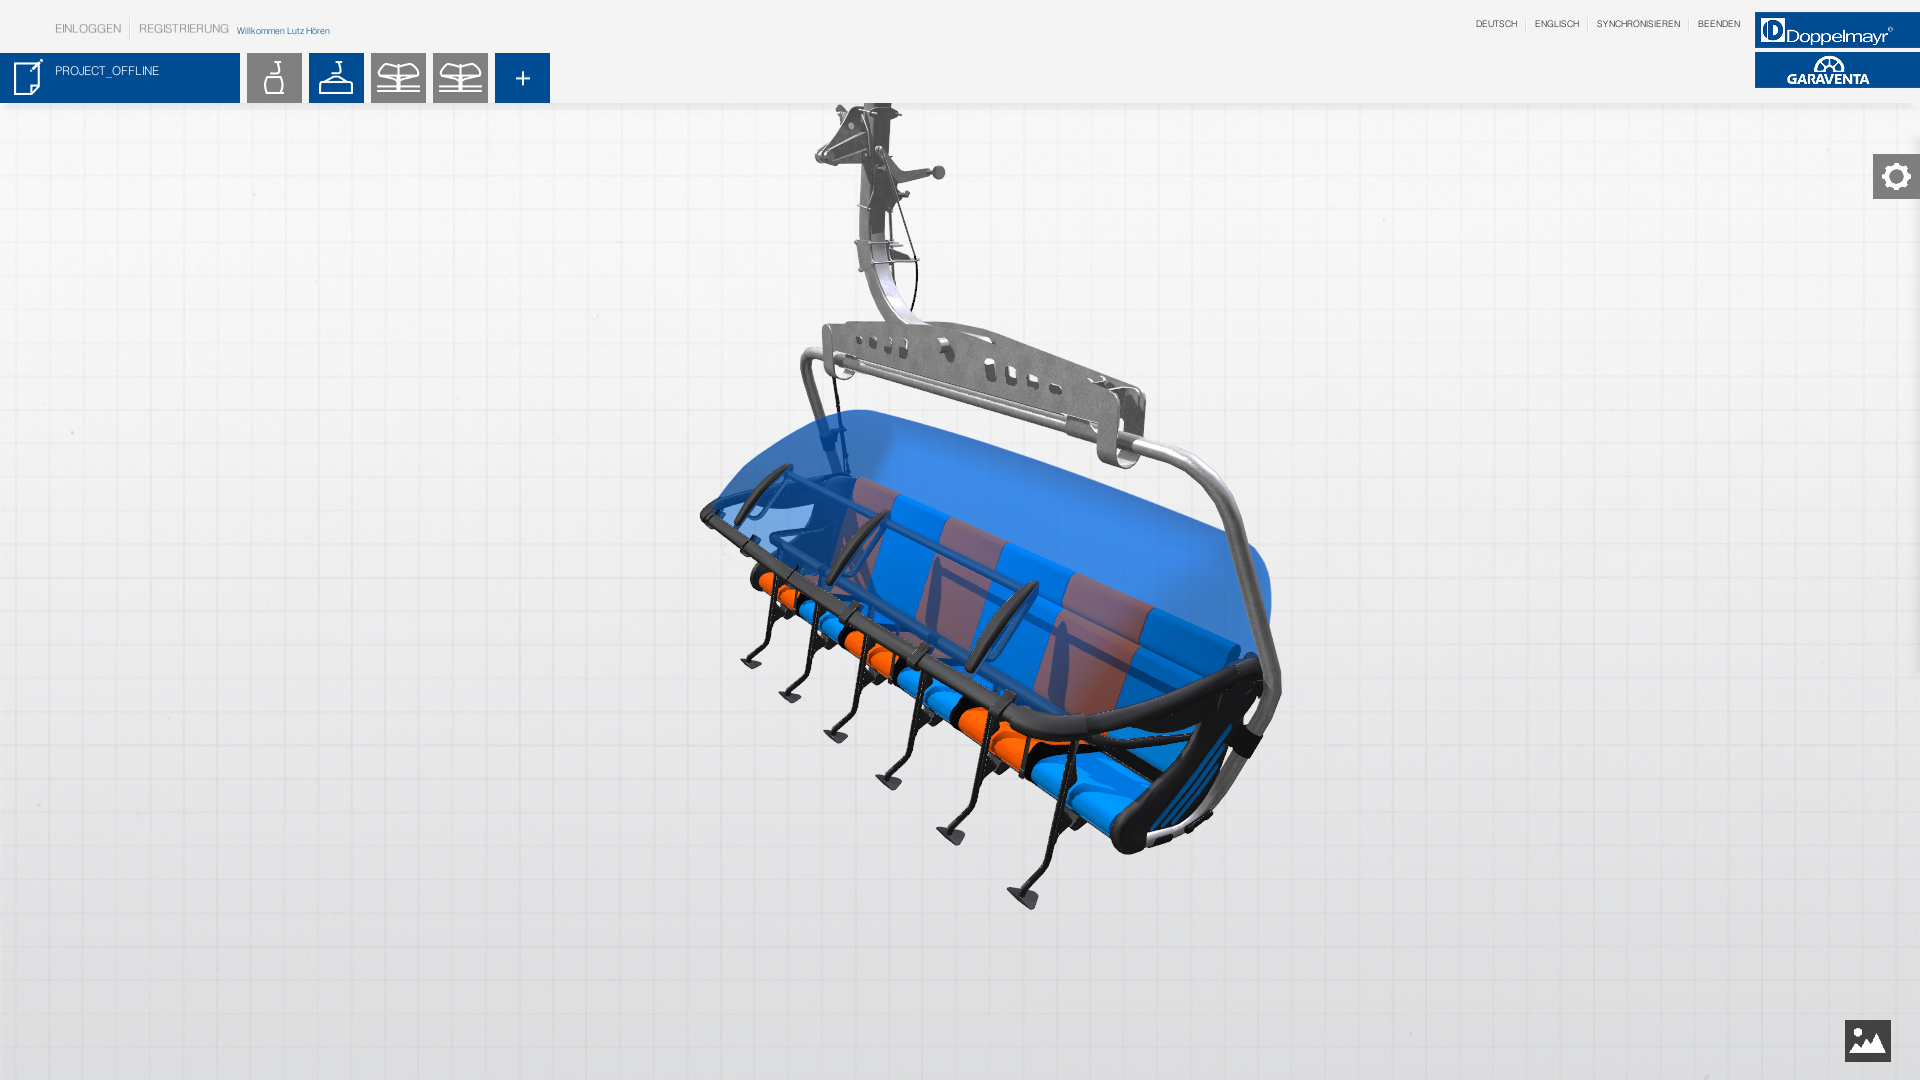 doppelmayr ropeway configurator chairlift without background